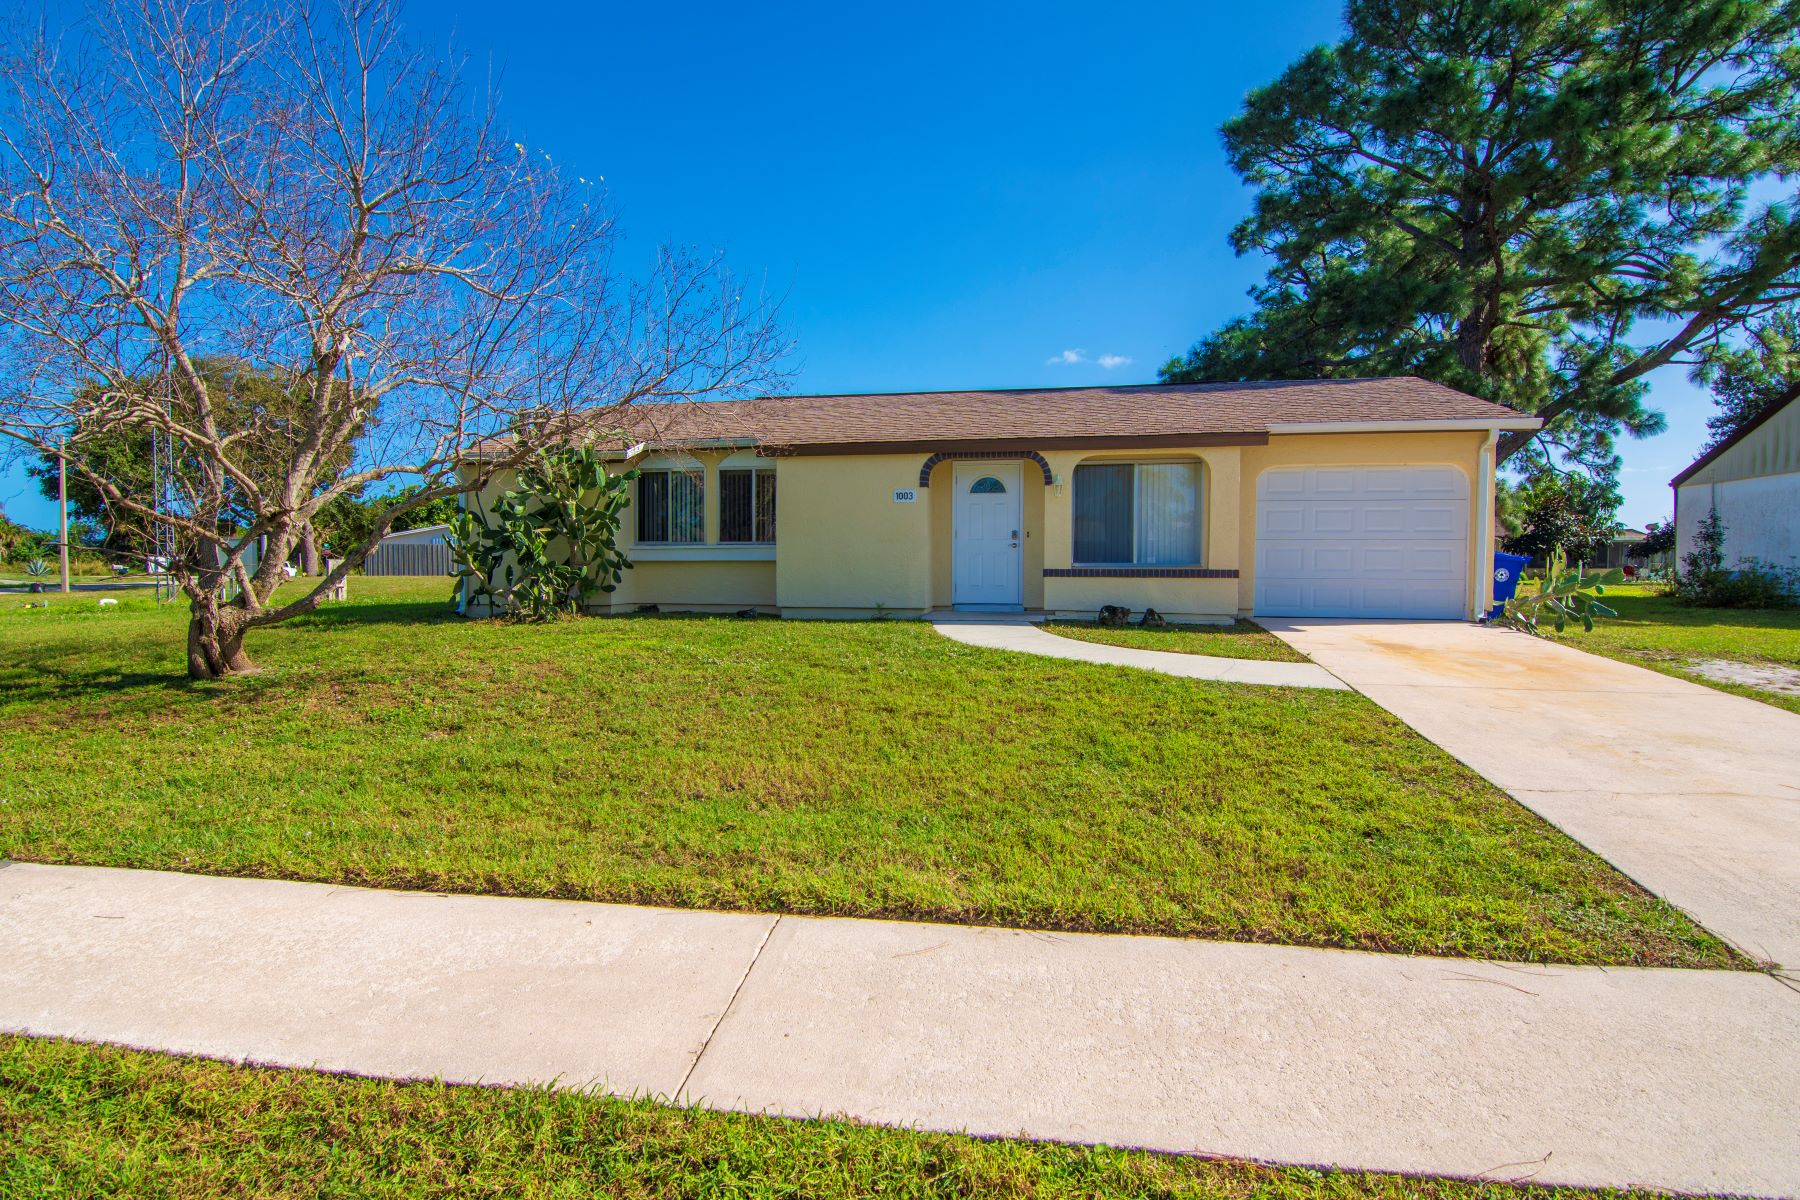 Single Family Homes for Sale at Neat as a Pin and Priced Right 1003 Schumann Drive Sebastian, Florida 32958 United States